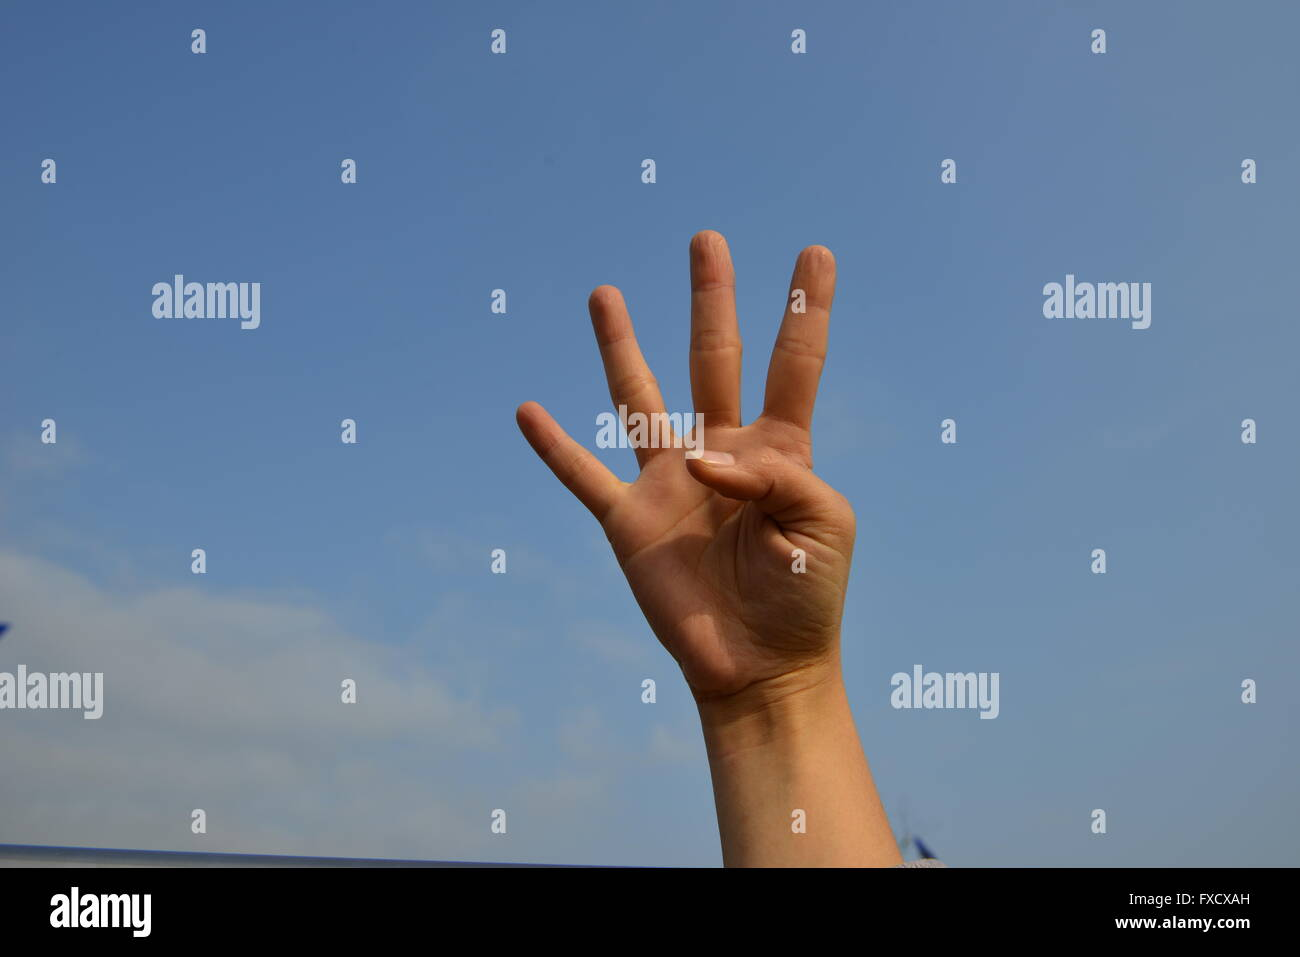 hand making the number four - Stock Image